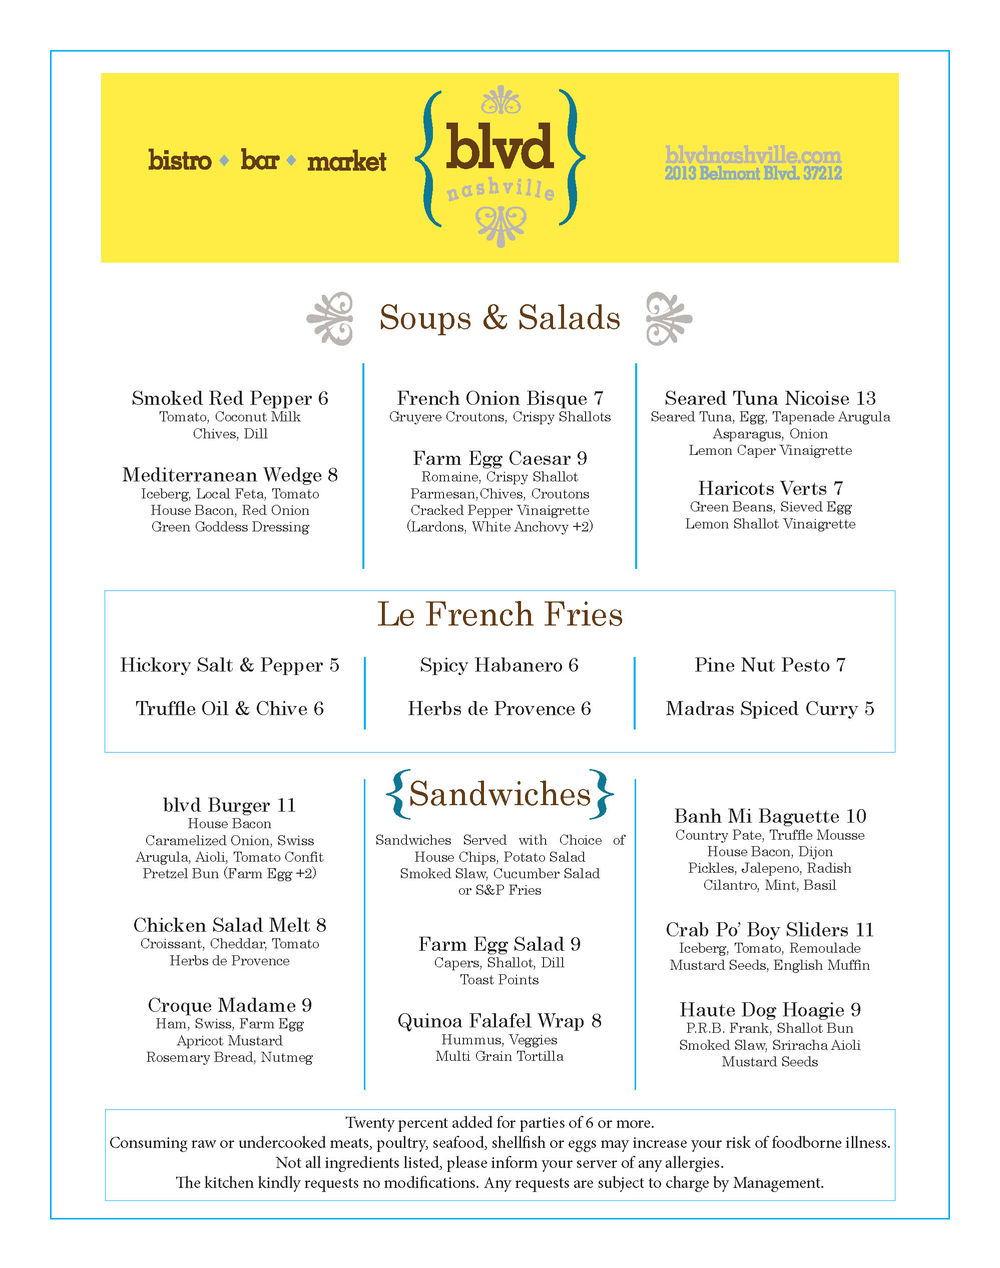 blvd menu june 2013_Page_1.jpg